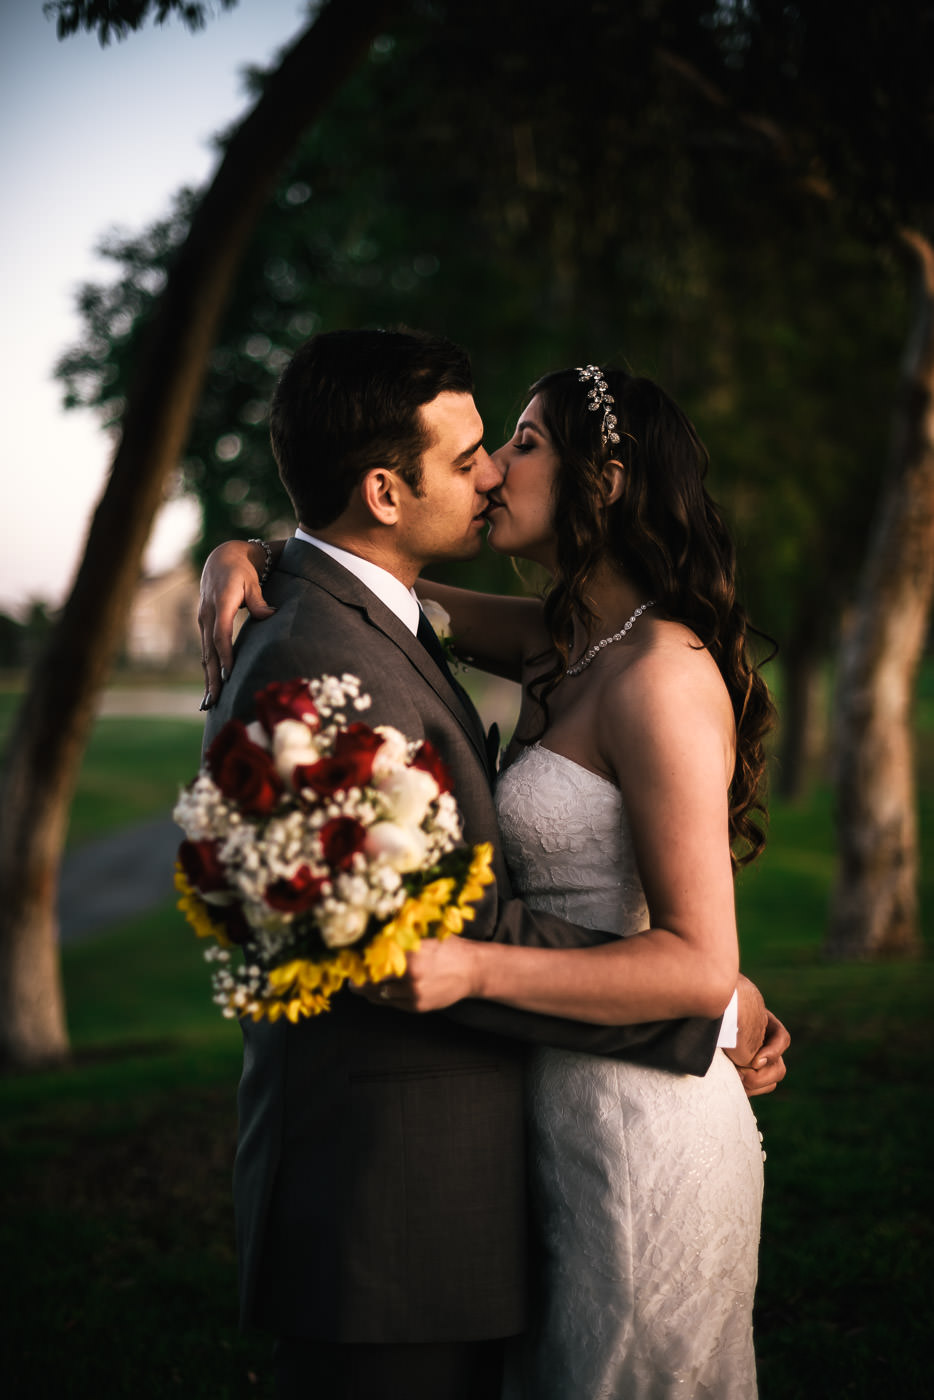 Bride and groom have a romantic kiss in the golden light of the setting sun.